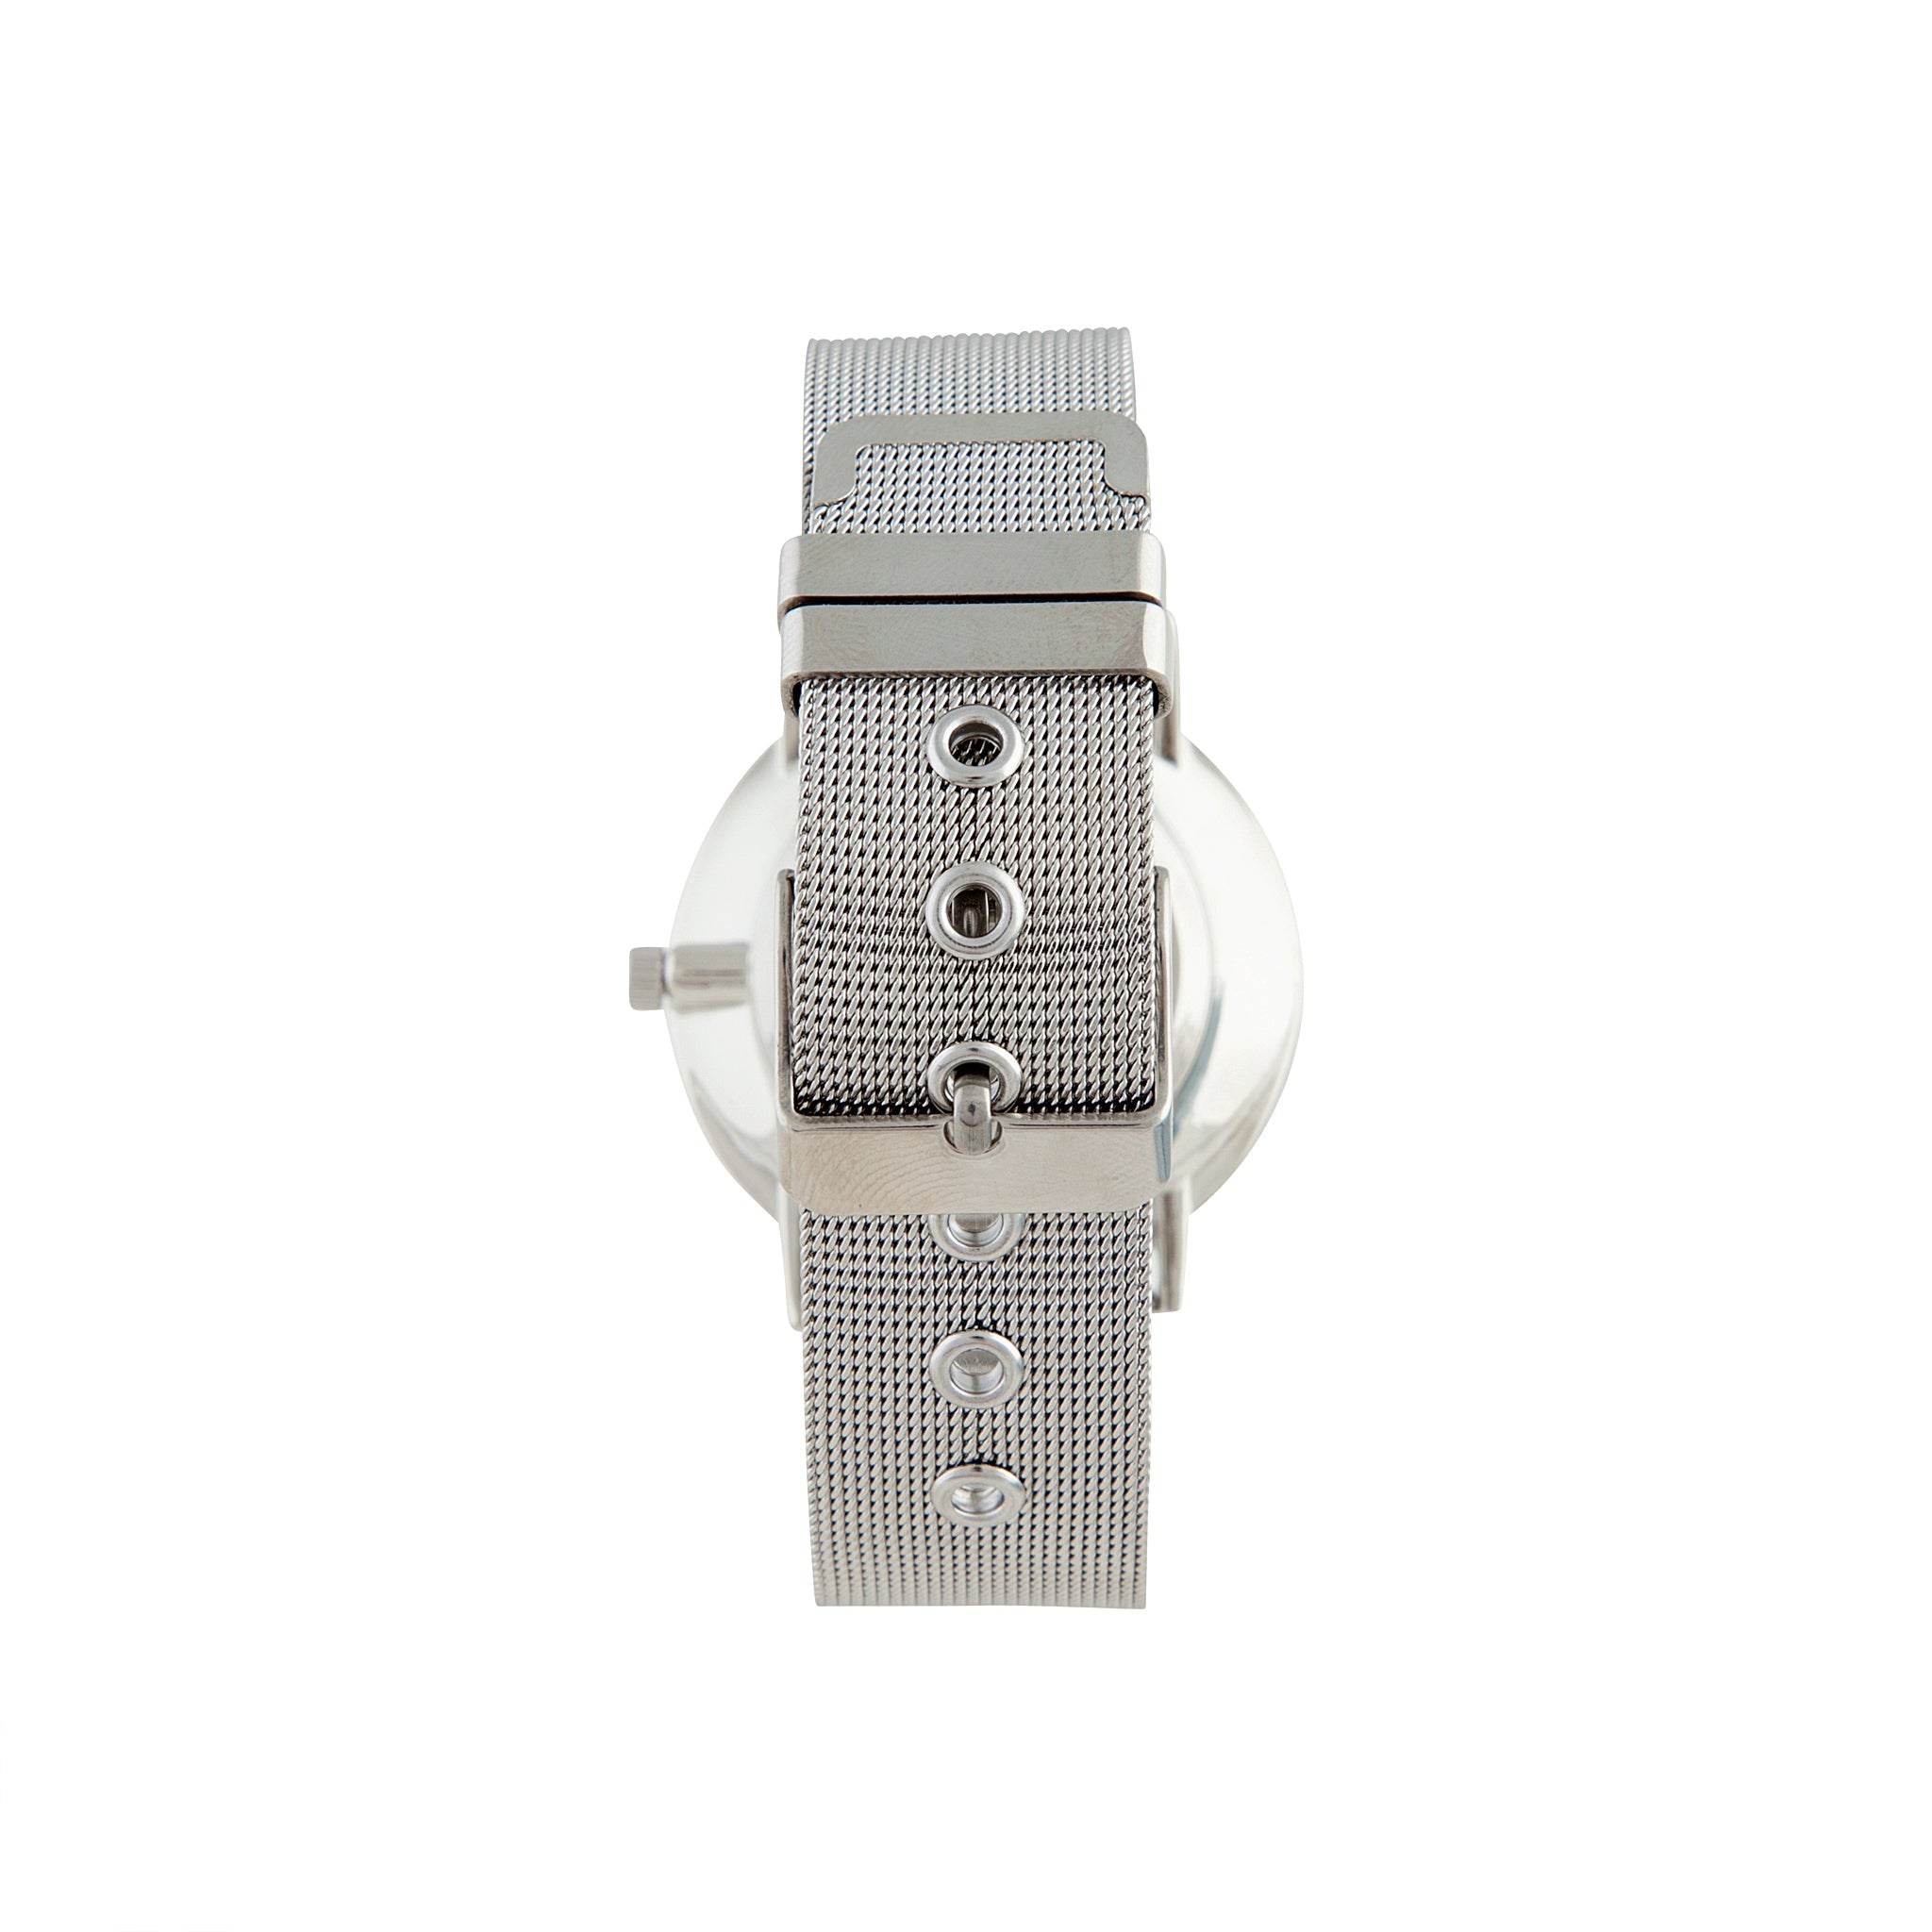 Rhodium Marble Mesh Strap Watch